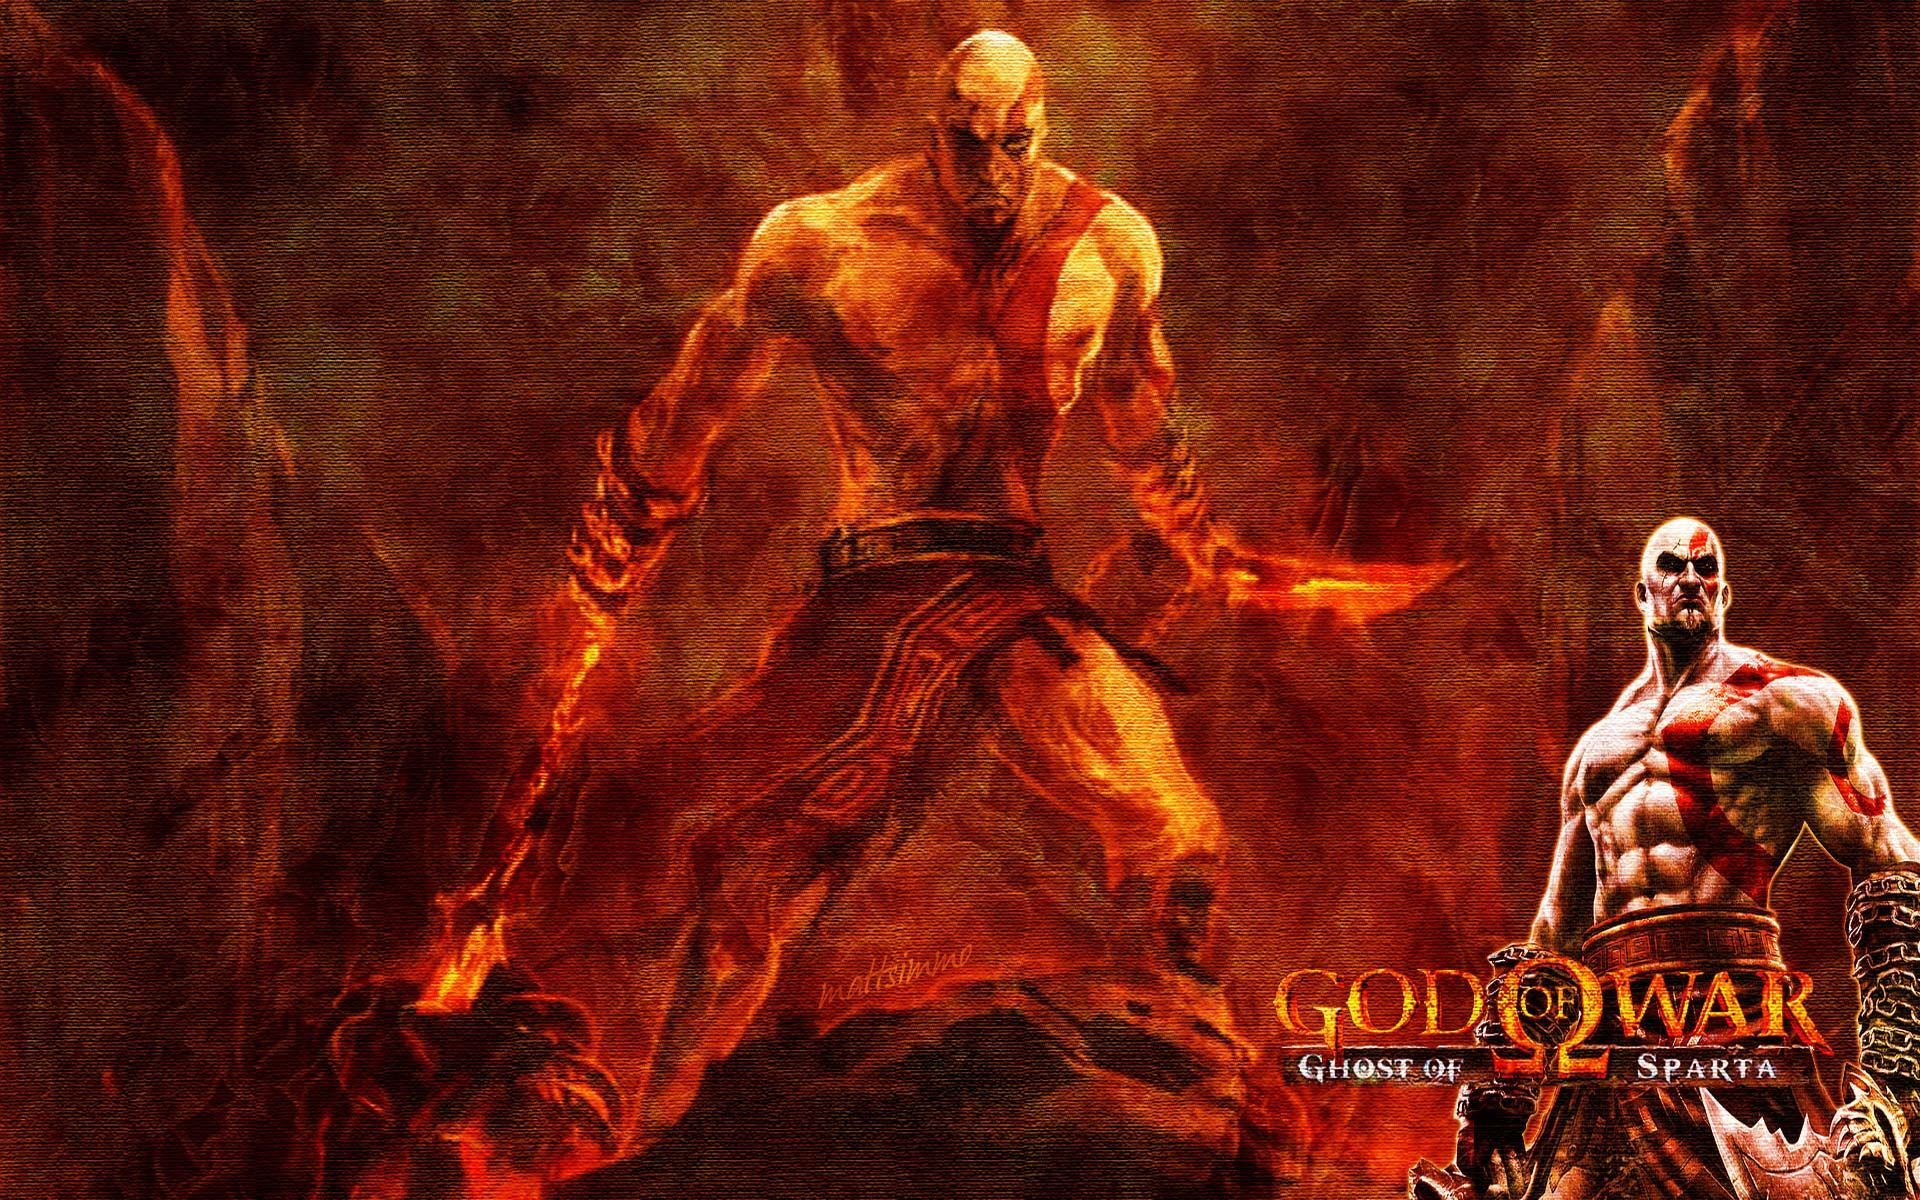 Download The Latest God Of War Ghost Of Sparta Wallpapers Pictures From Wallpapers Com